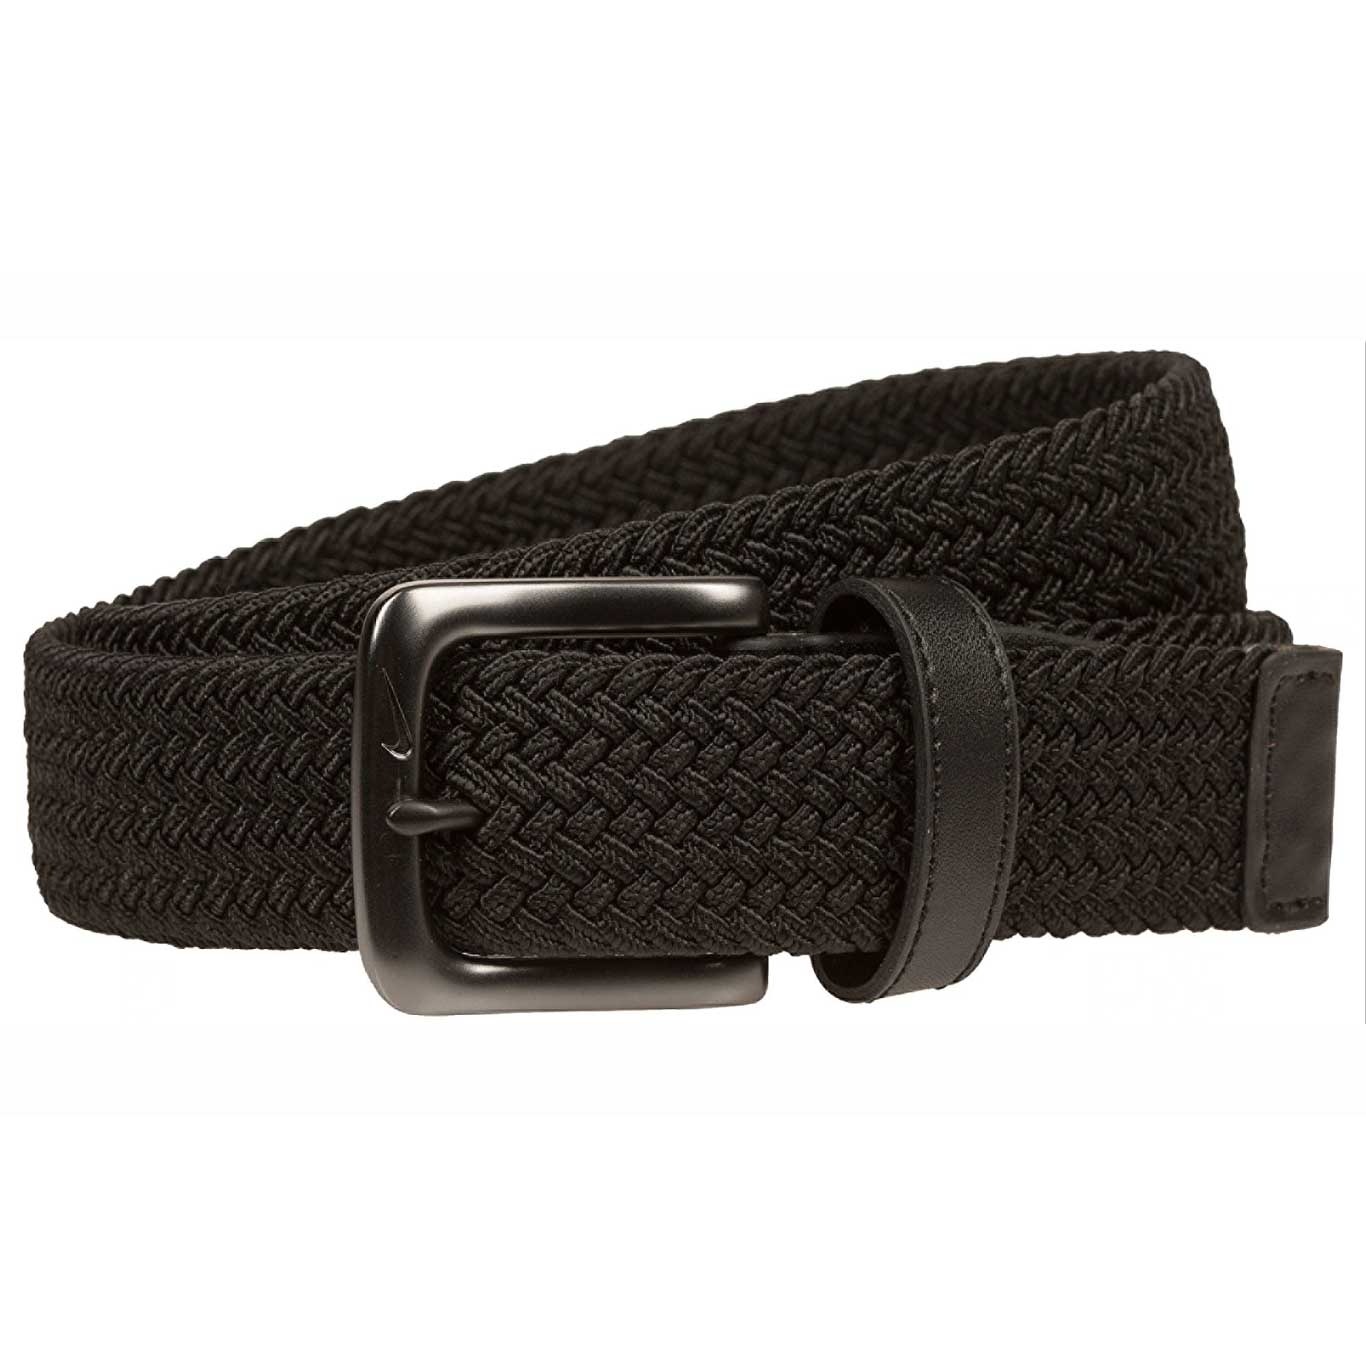 Nike Stretch Woven Black Golf Belt